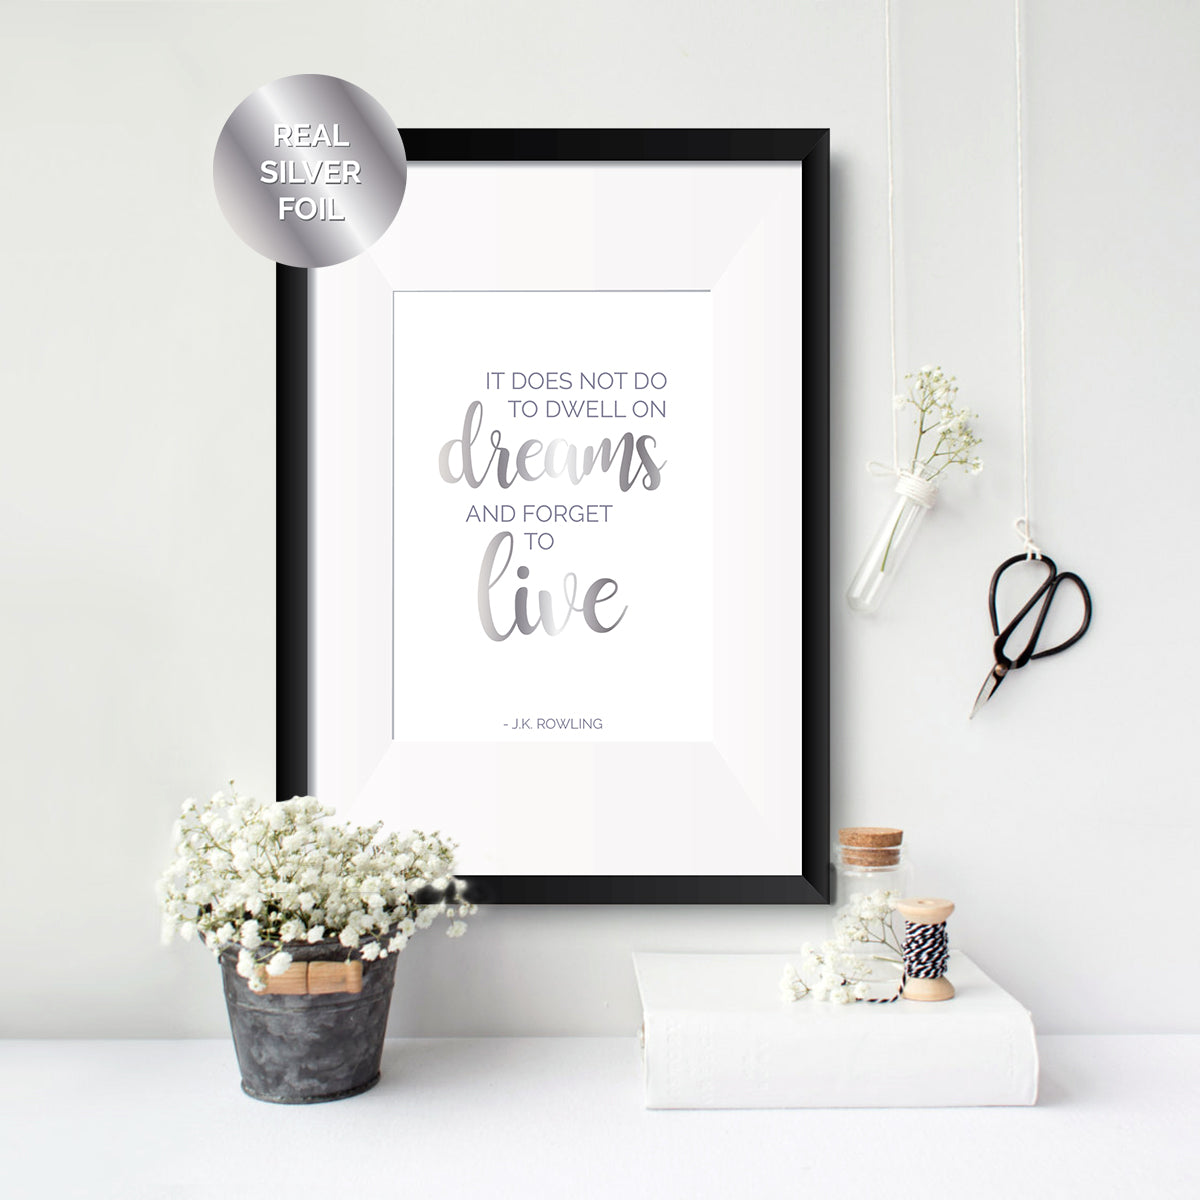 Dwell on Dreams - Harry Potter Foil Print - Oregano Designs